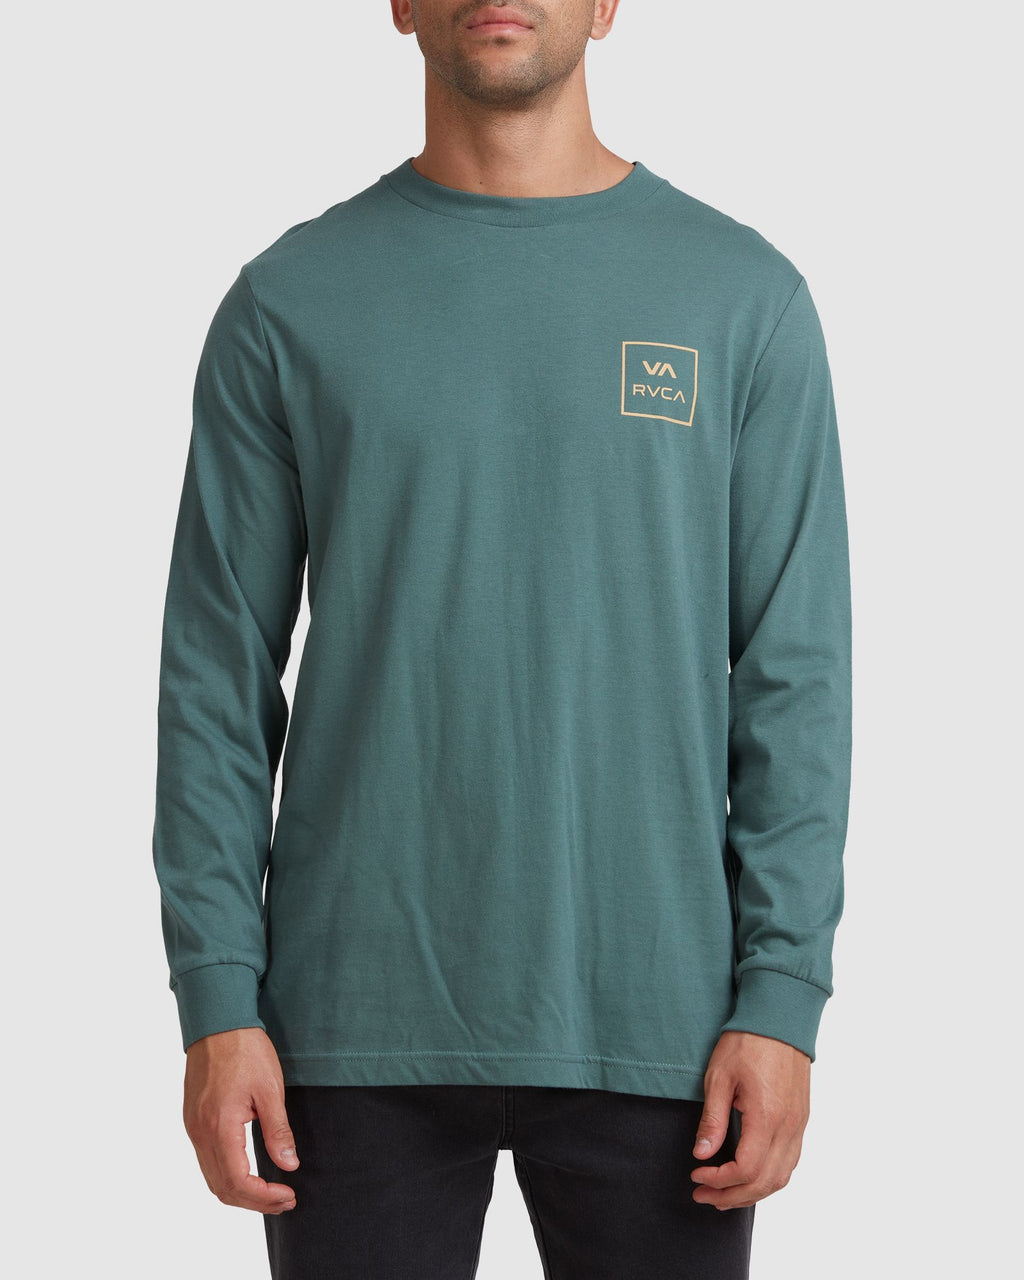 RVCA Mens VA All The Ways LS Tee